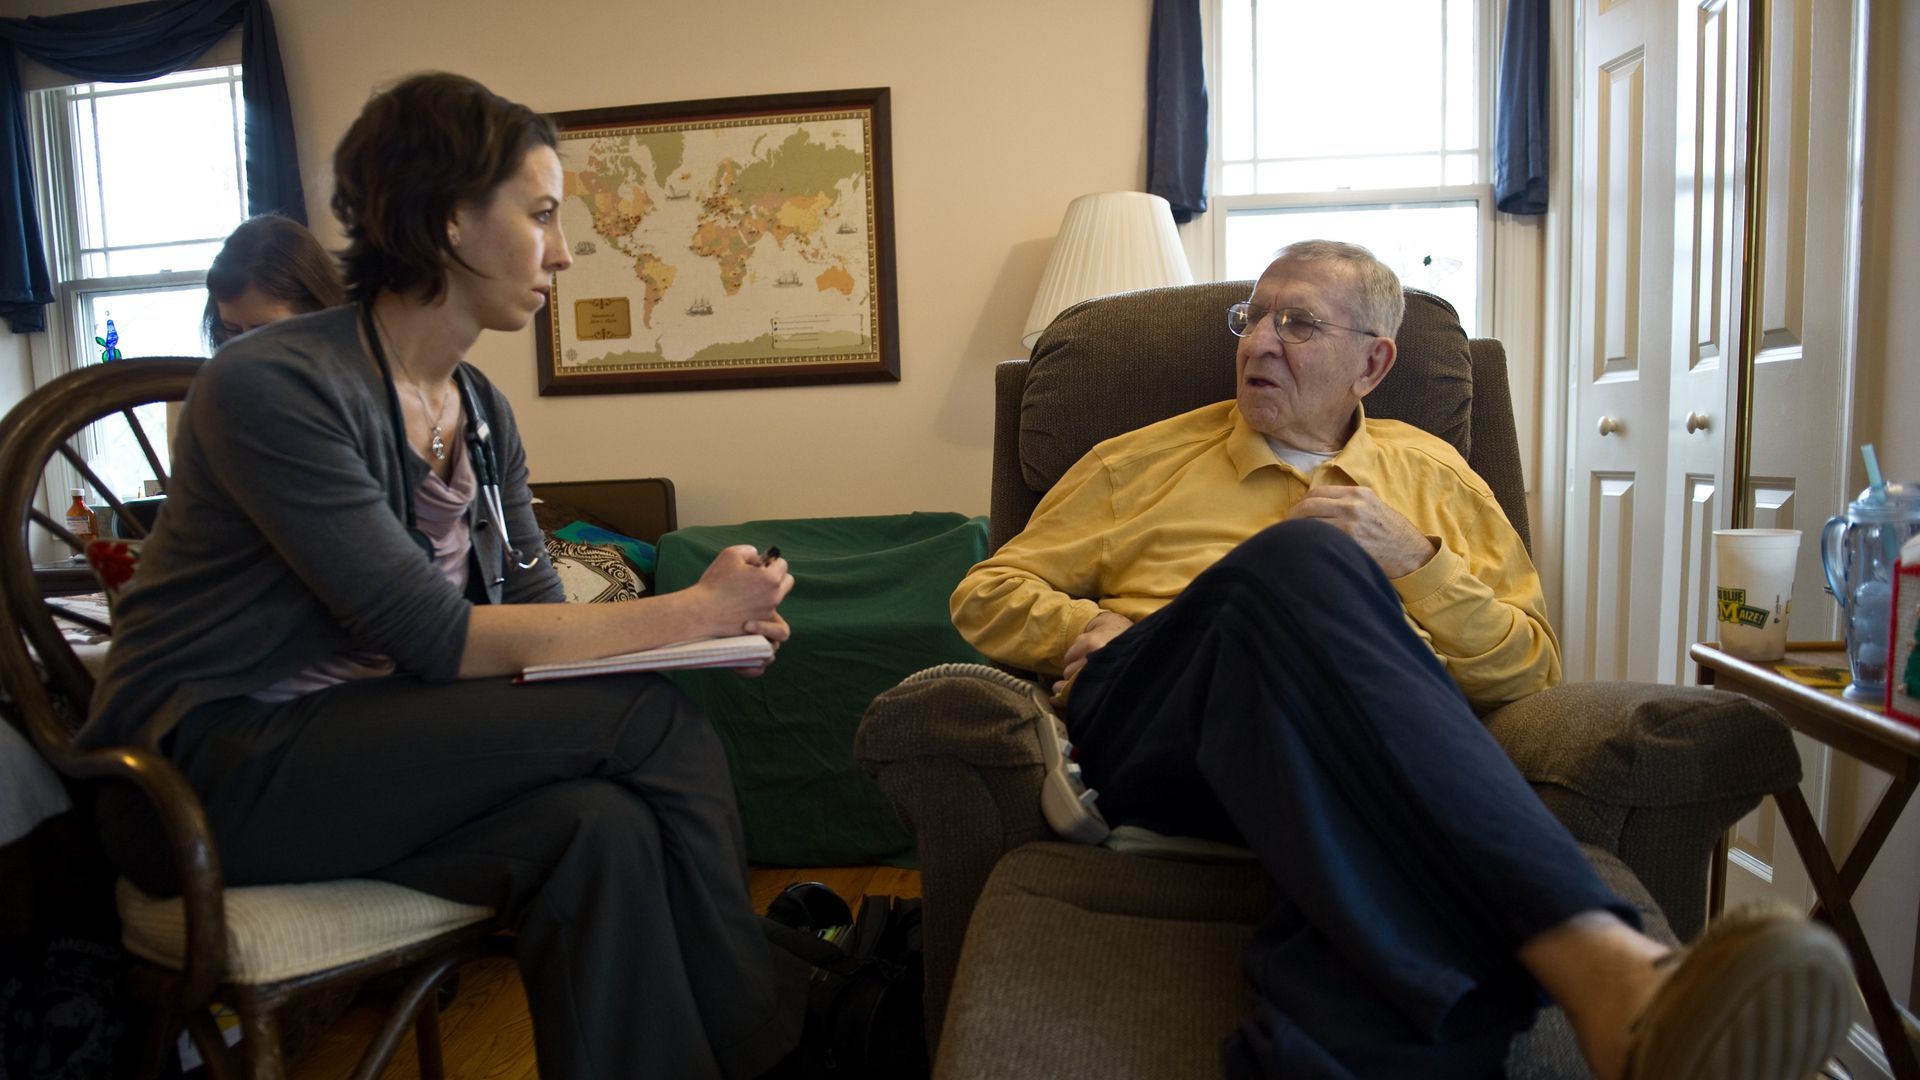 A neurologist meets with an elderly patient in his home.